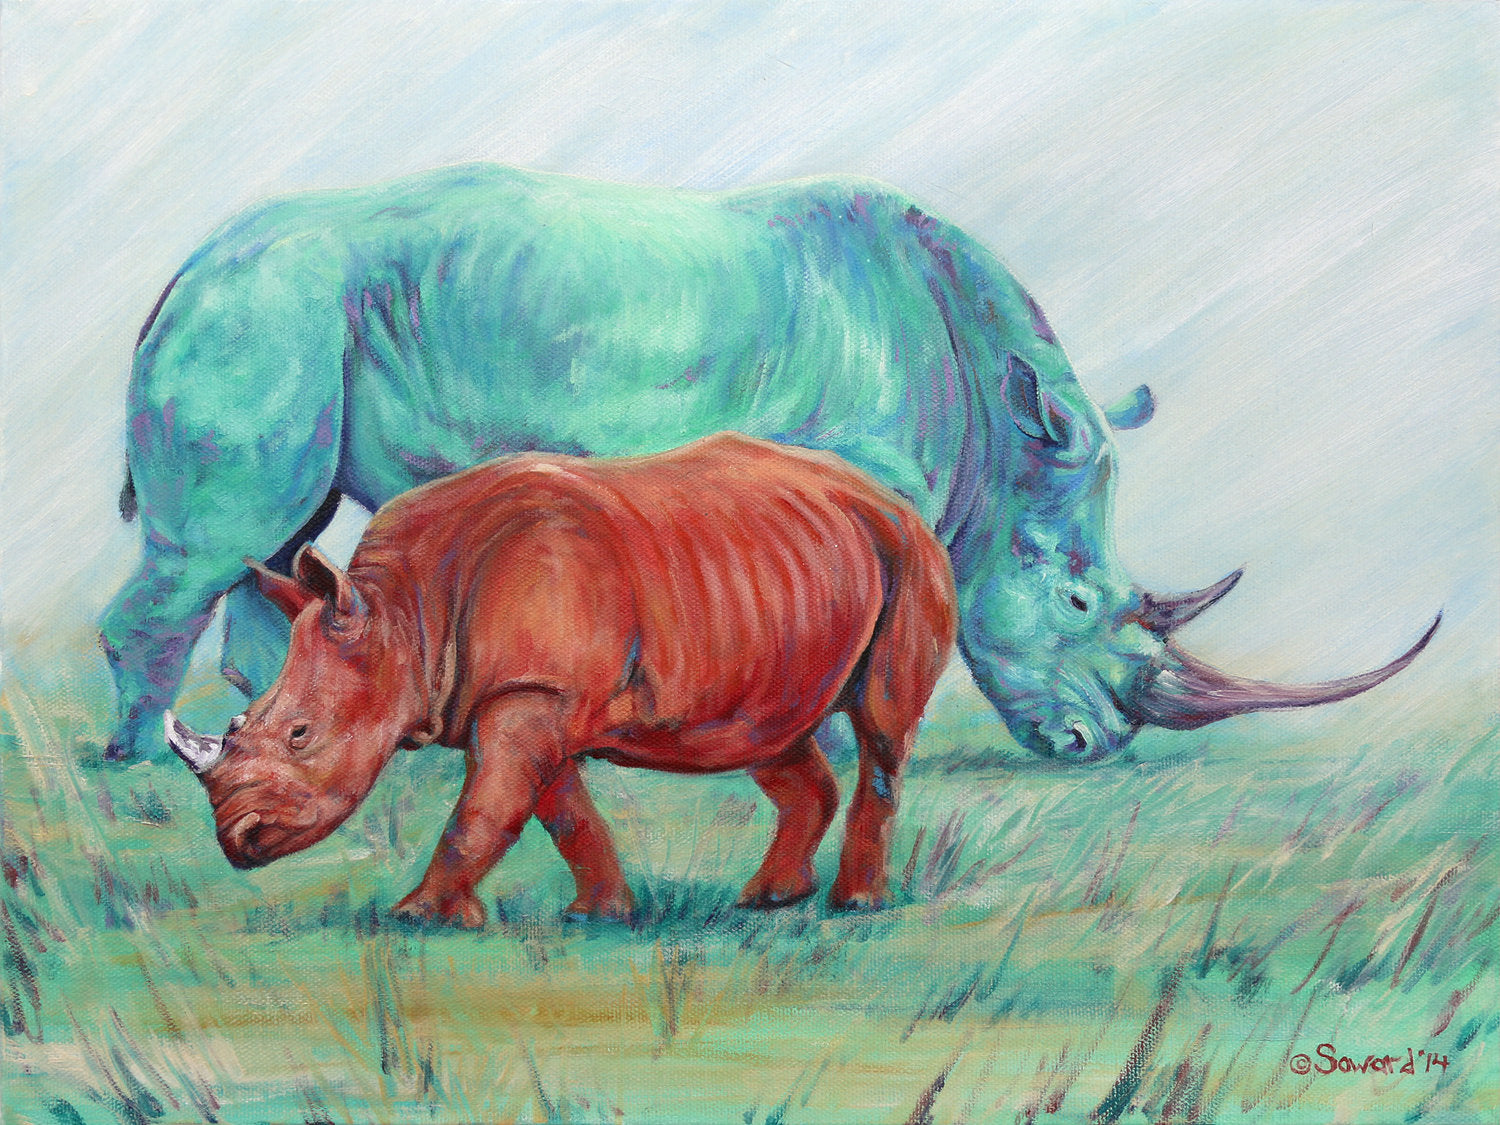 Fire and Life, copyright Sarah Soward, painting of two rhinos, one red and one blue-green